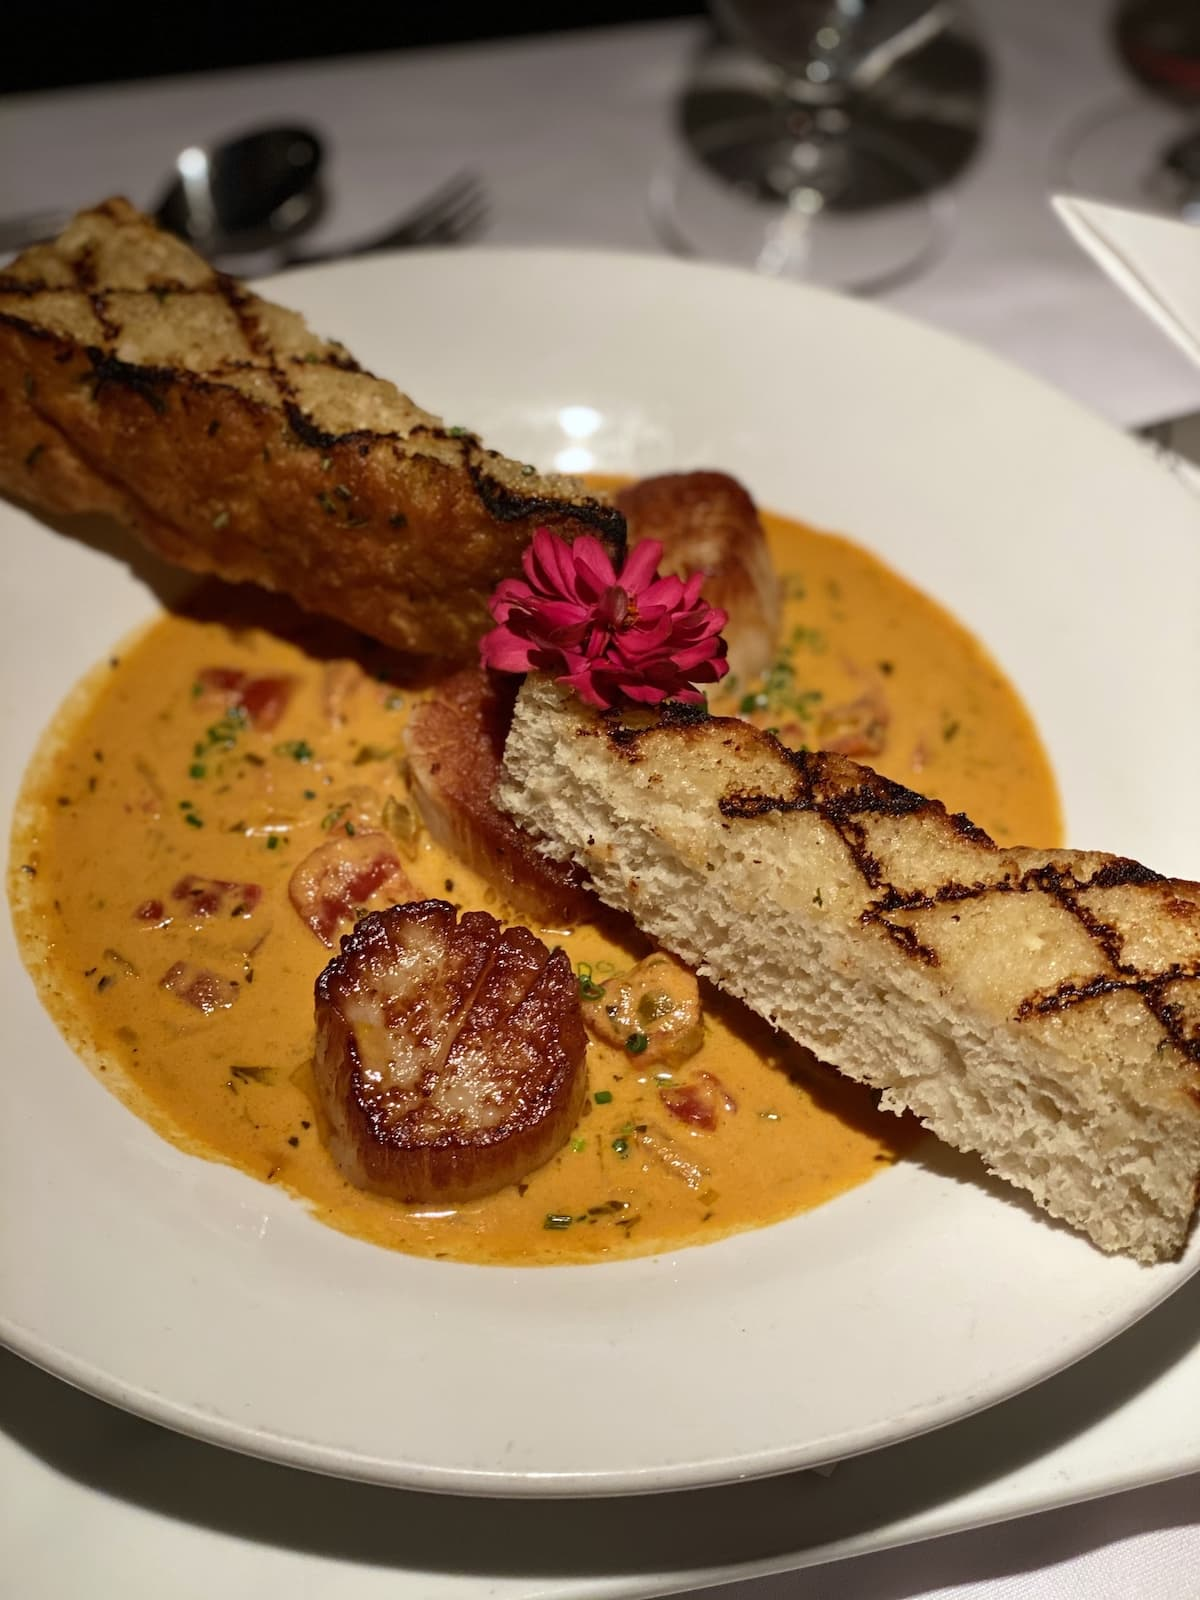 Scallops in a tomato broth with slices of grilled bread